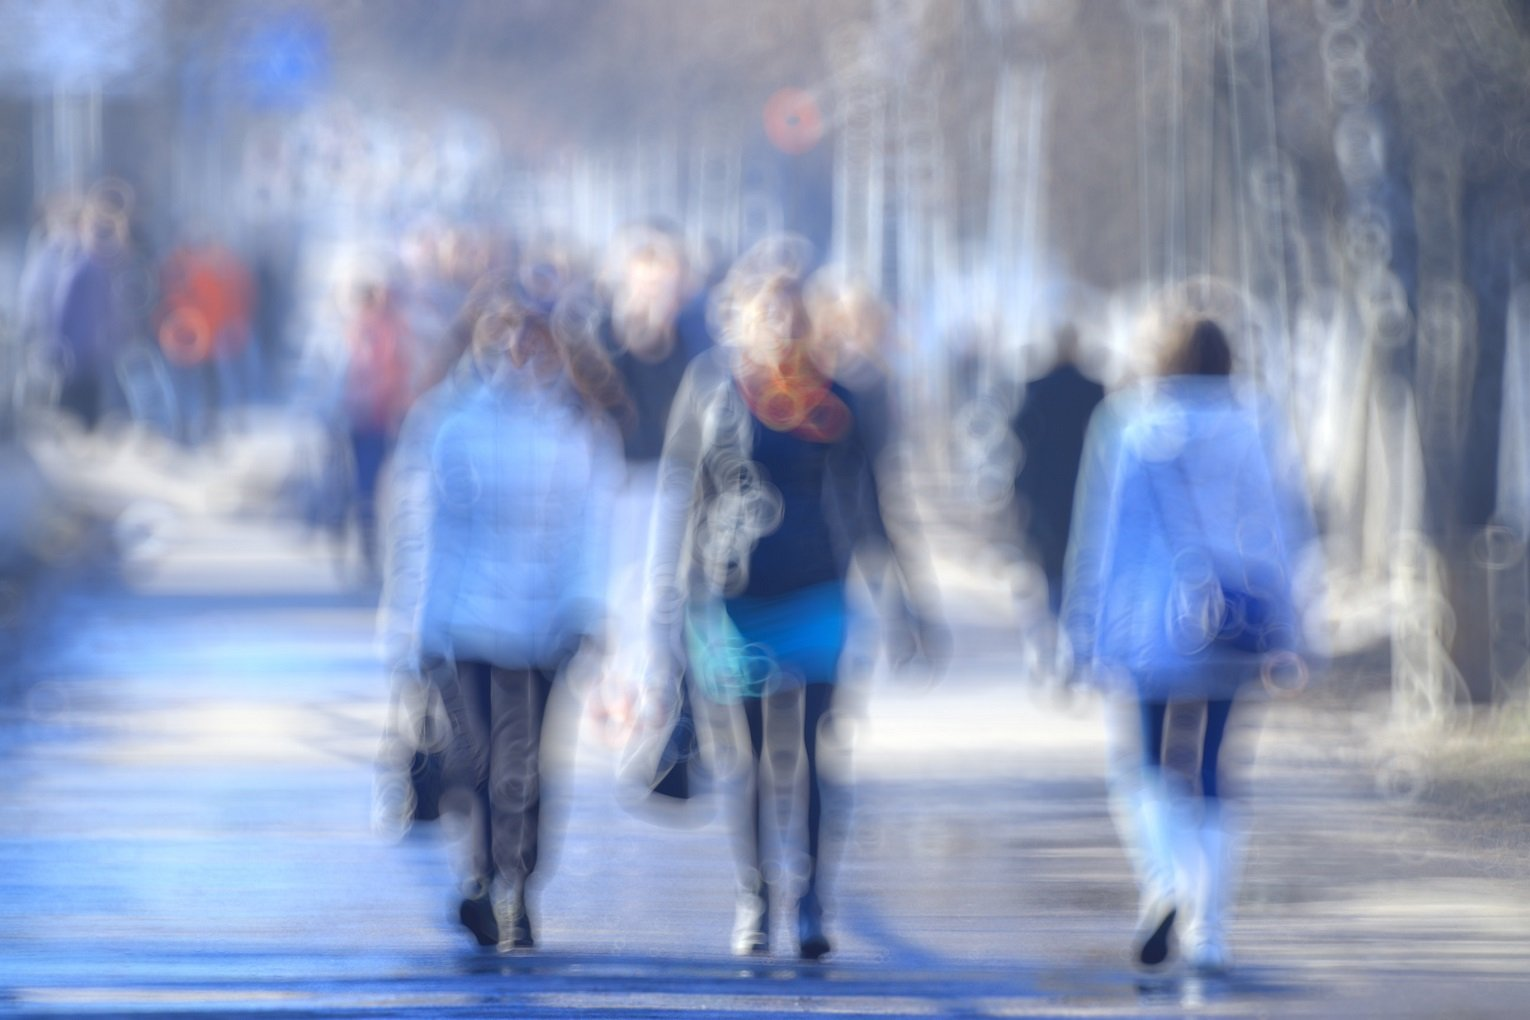 blurred background defocusing city people crowd the effects of wearing wrong prescription glasses